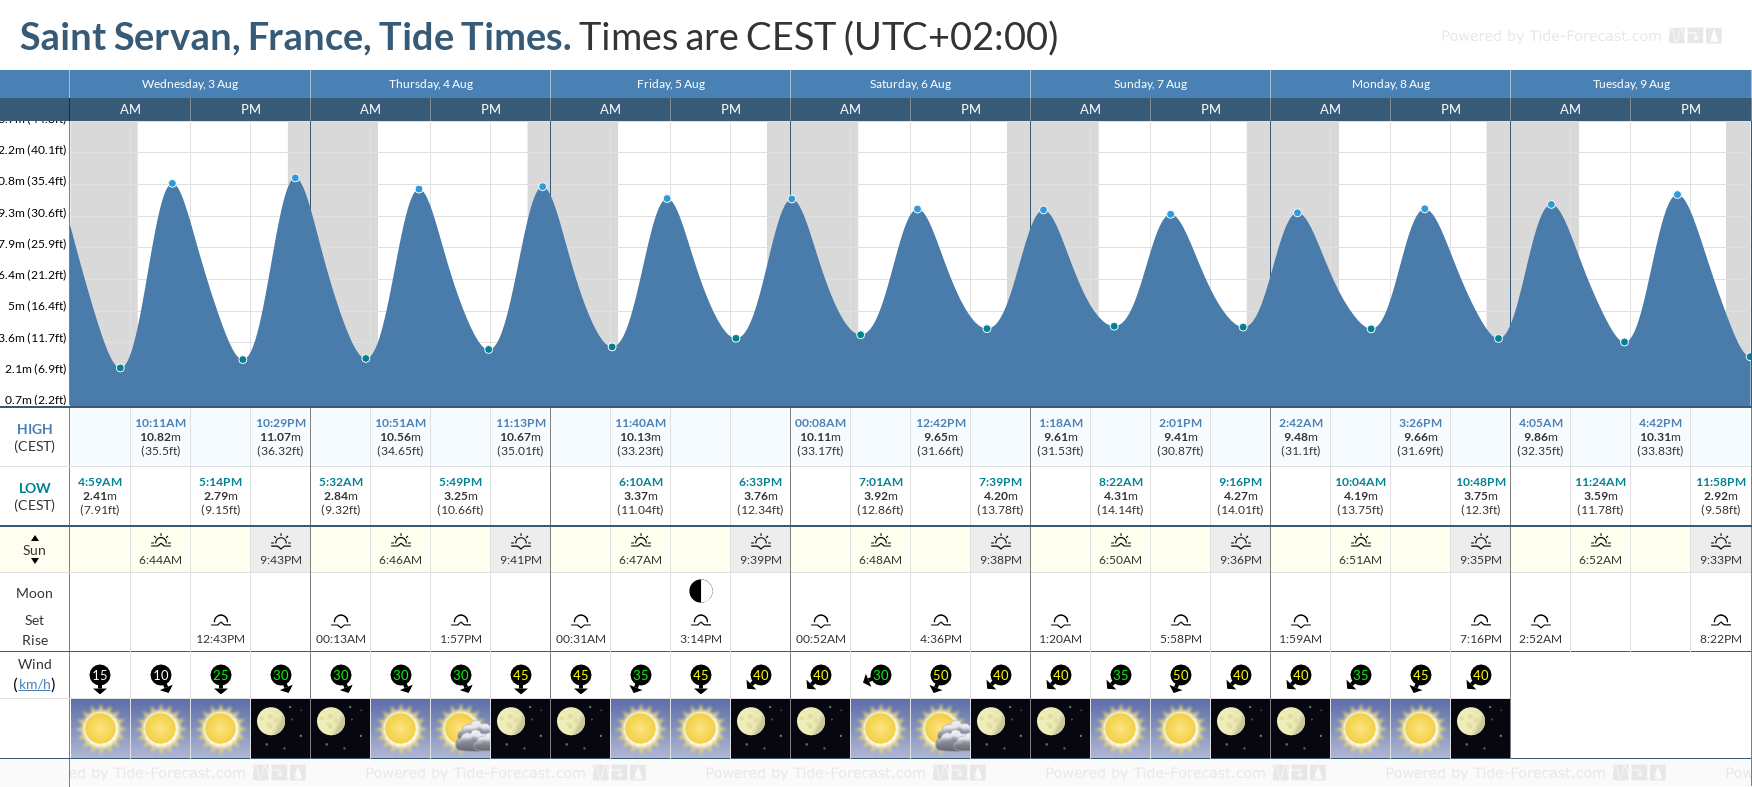 Saint Servan, France Tide Chart including high and low tide tide times for the next 7 days